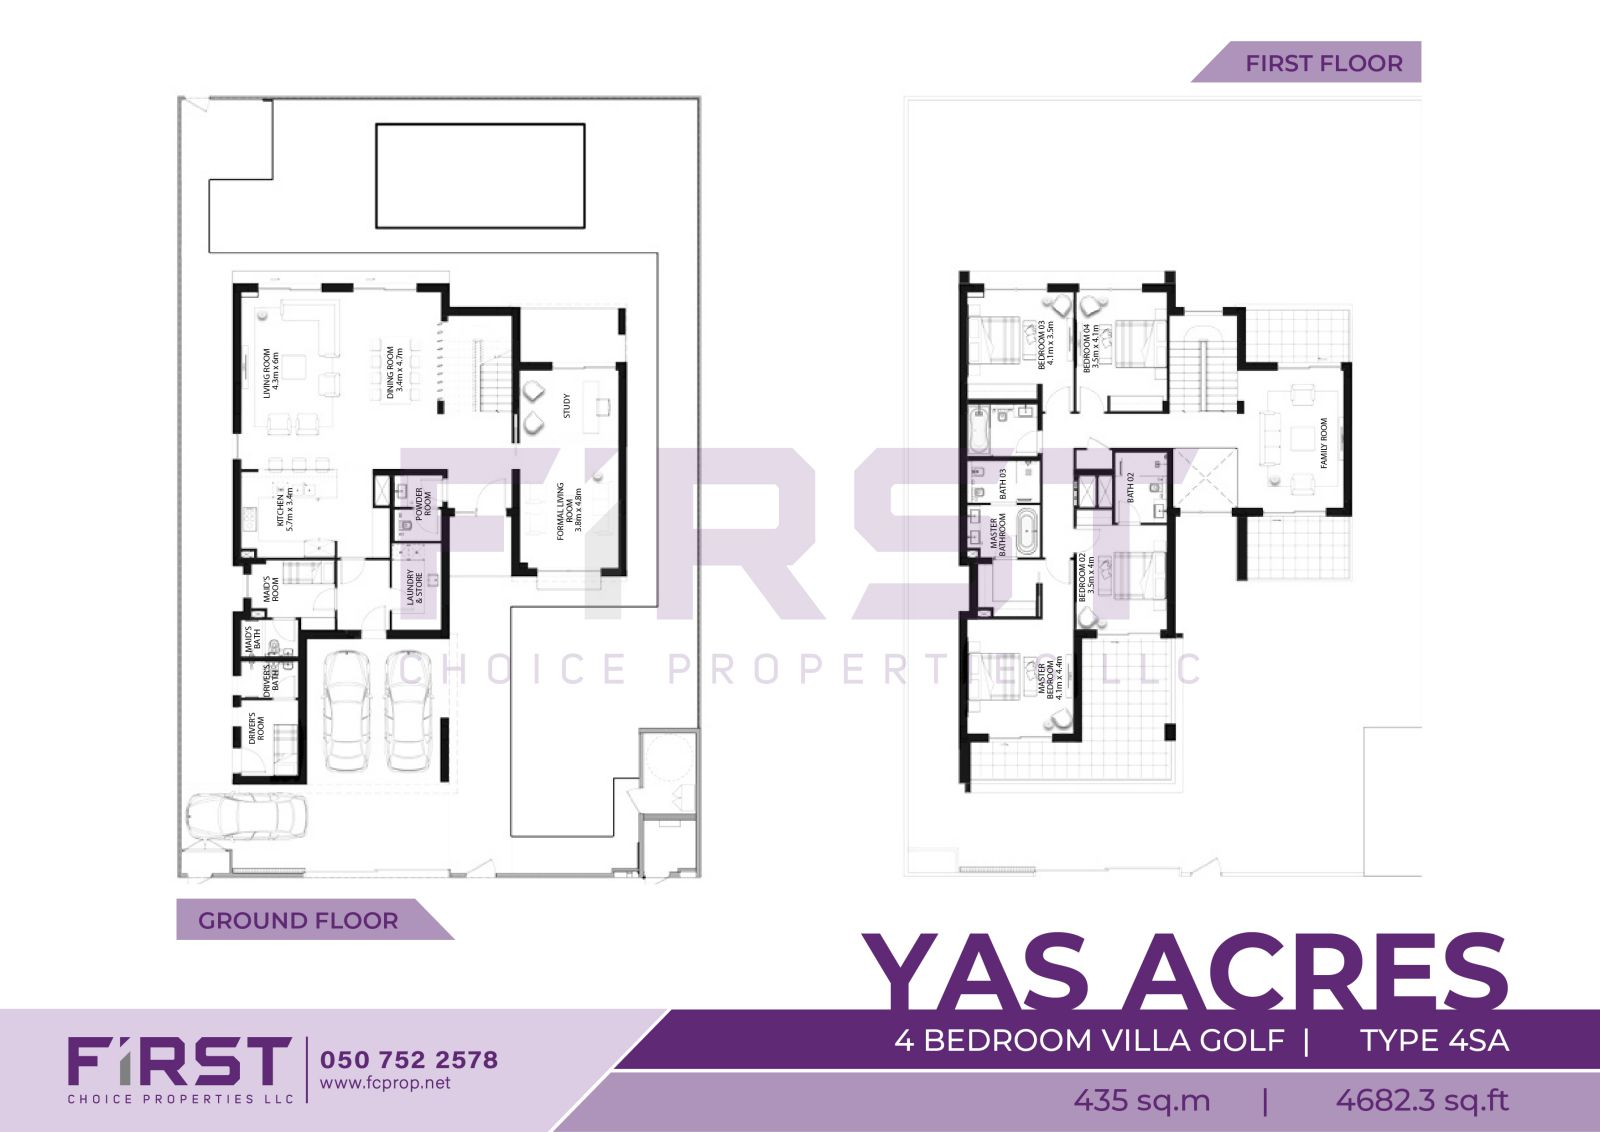 Floor Plan of 4 Bedroom Villz Golf Type 4SA in Yas Acres Yas Island Abu Dhabi UAE 435 sq.m 4682.3 sq.ft.jpg